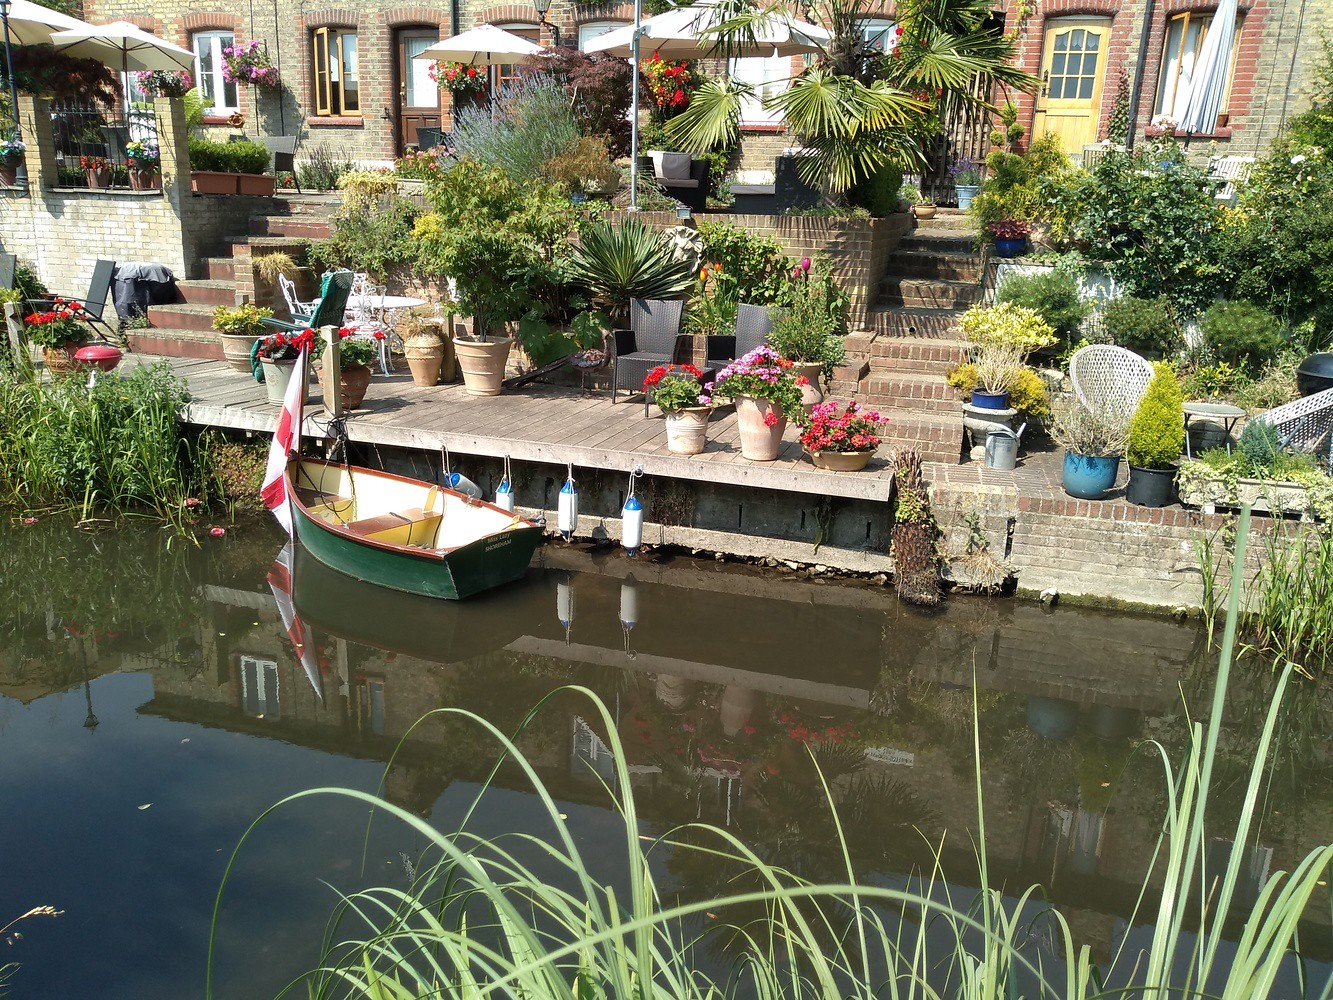 Moorings and pots